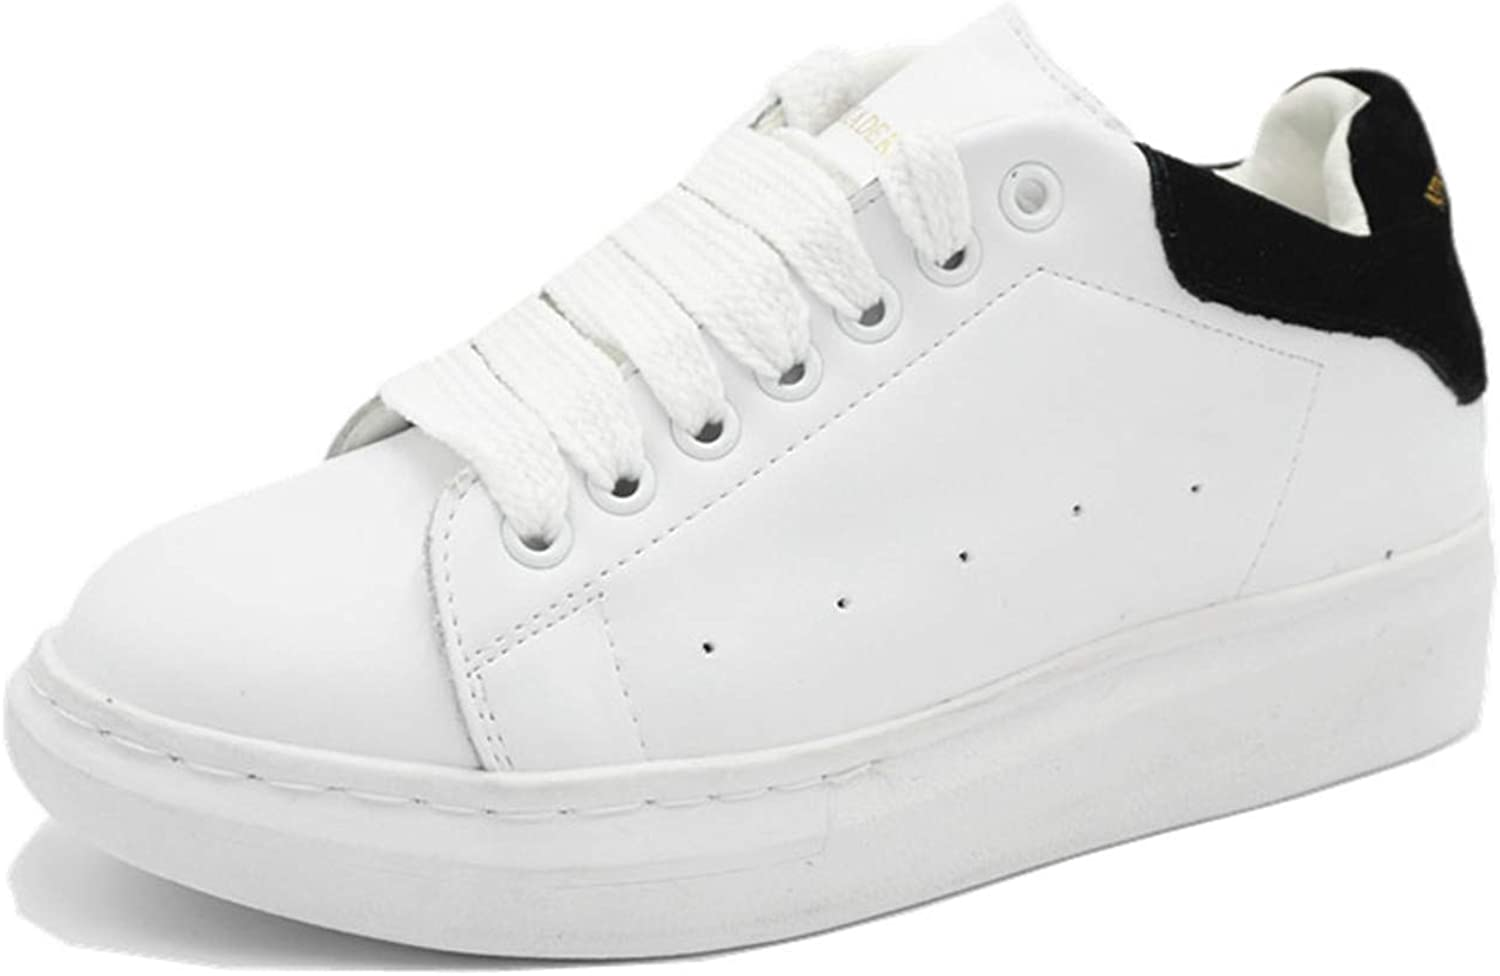 Genuine Leather Women's Platform White Sneakers Lace Up shoes Casual Walking Footwear Black 8